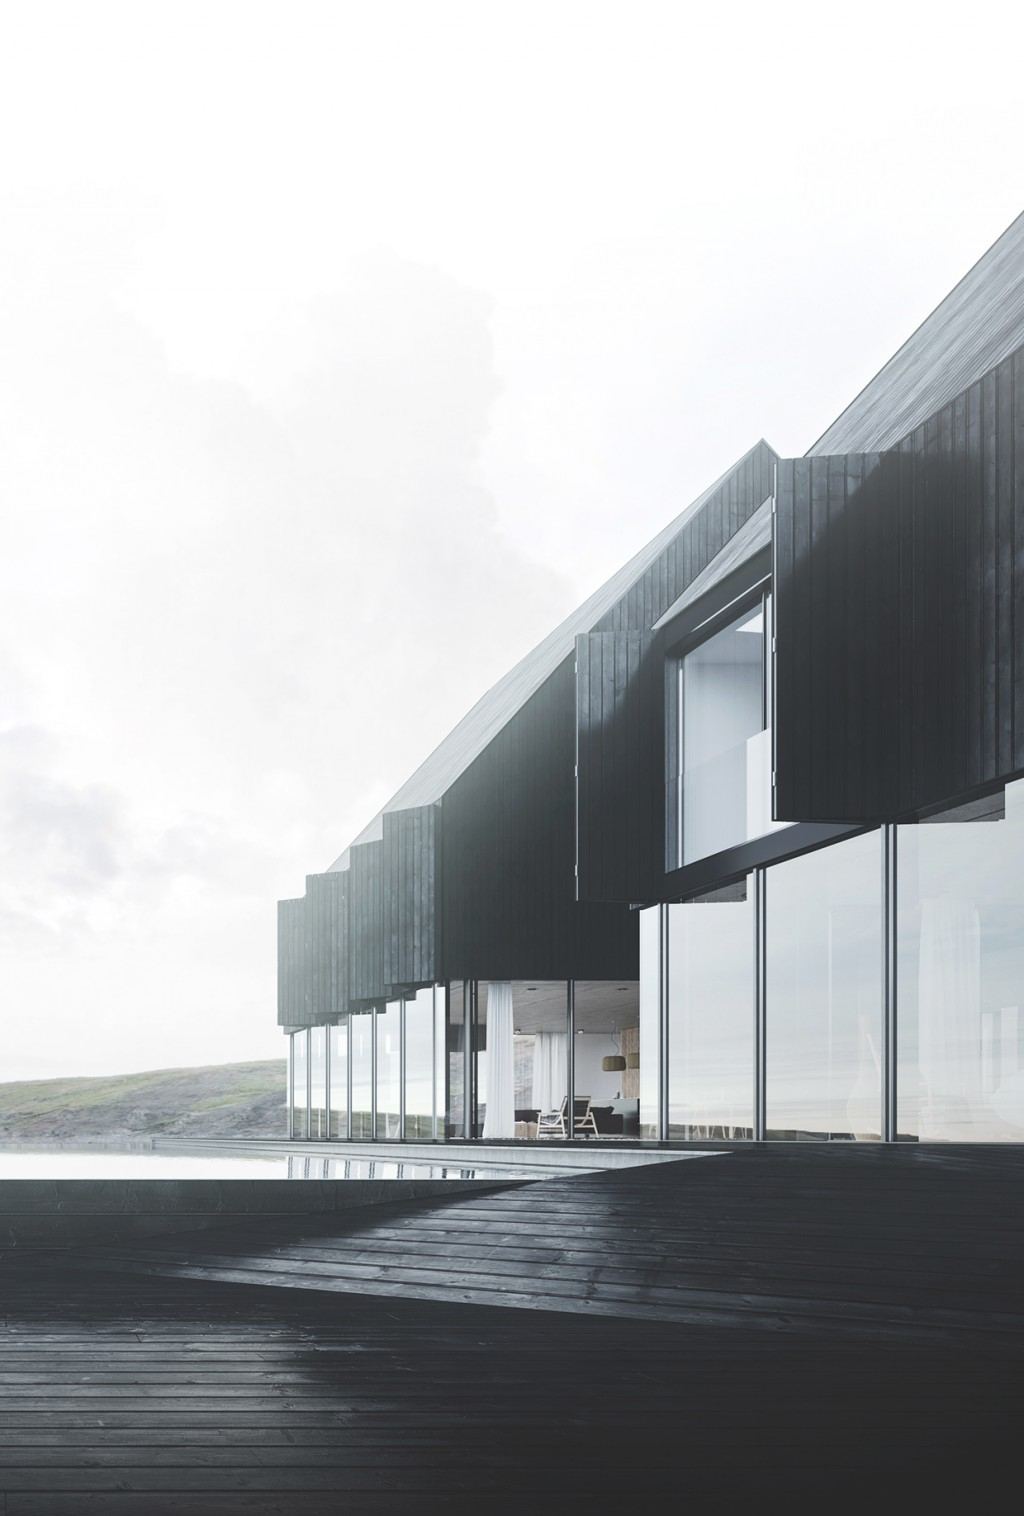 Architecture Of A Mom 15 Easy Diy Gift Ideas: Minimal Architecture On A Solitary Iceland Landscape